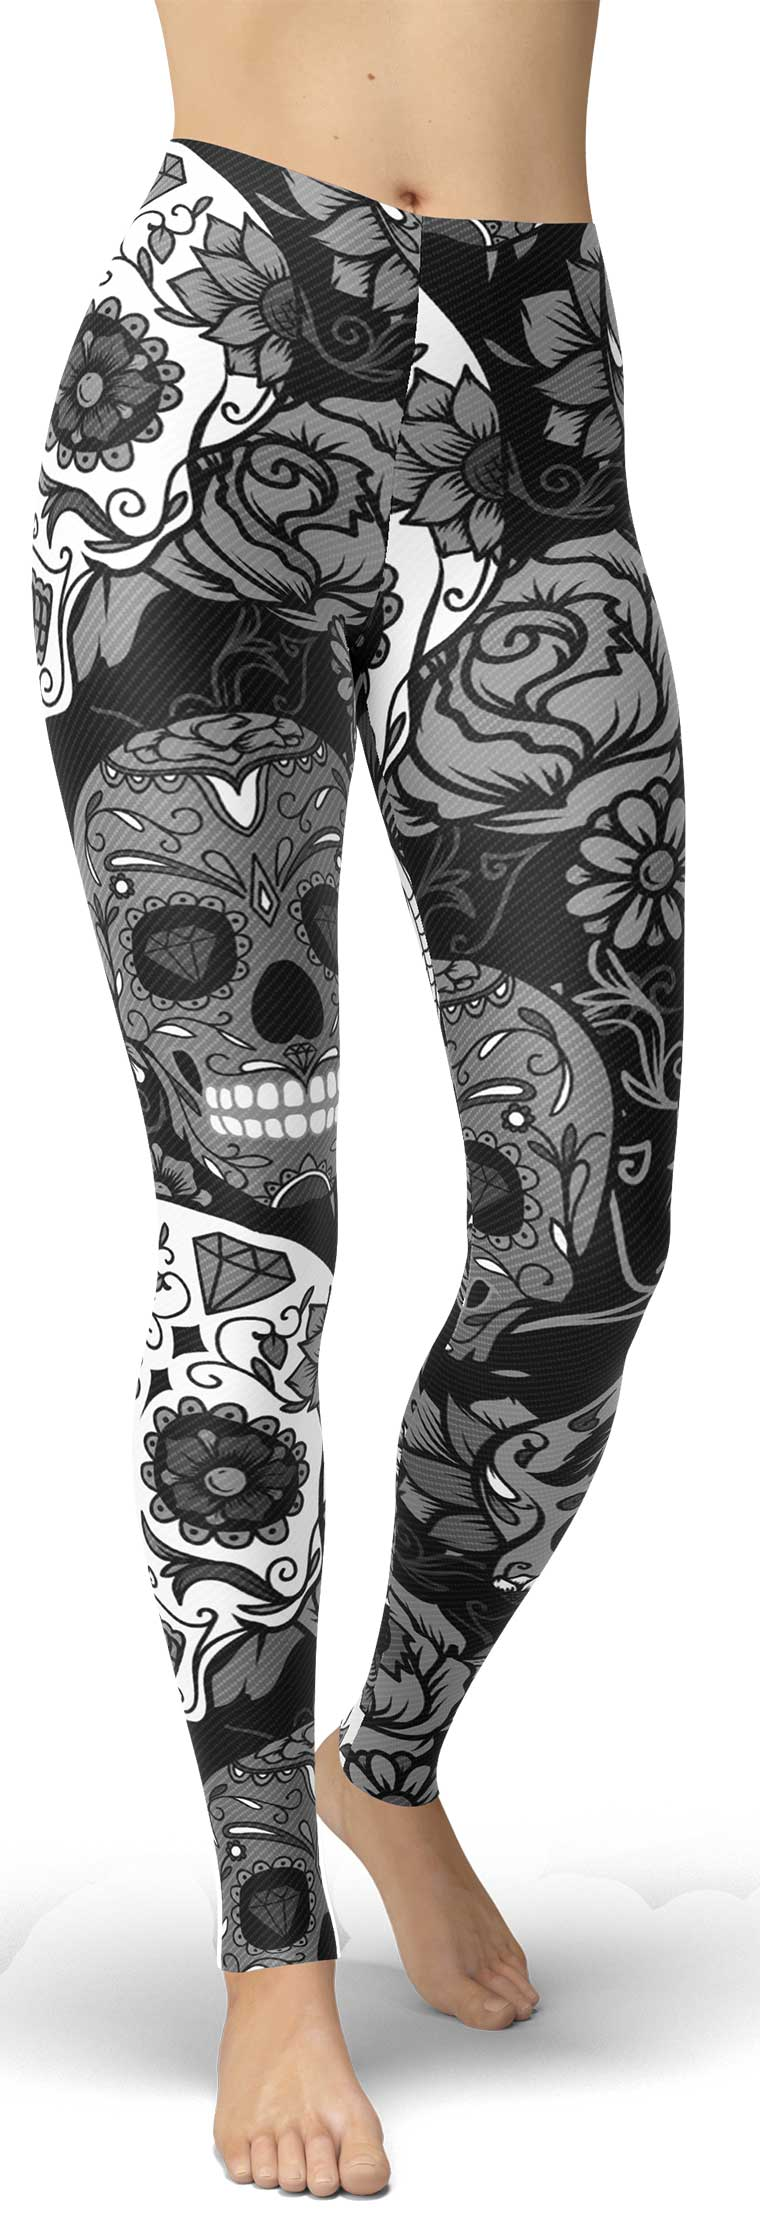 Black Sugar Skull Leggings